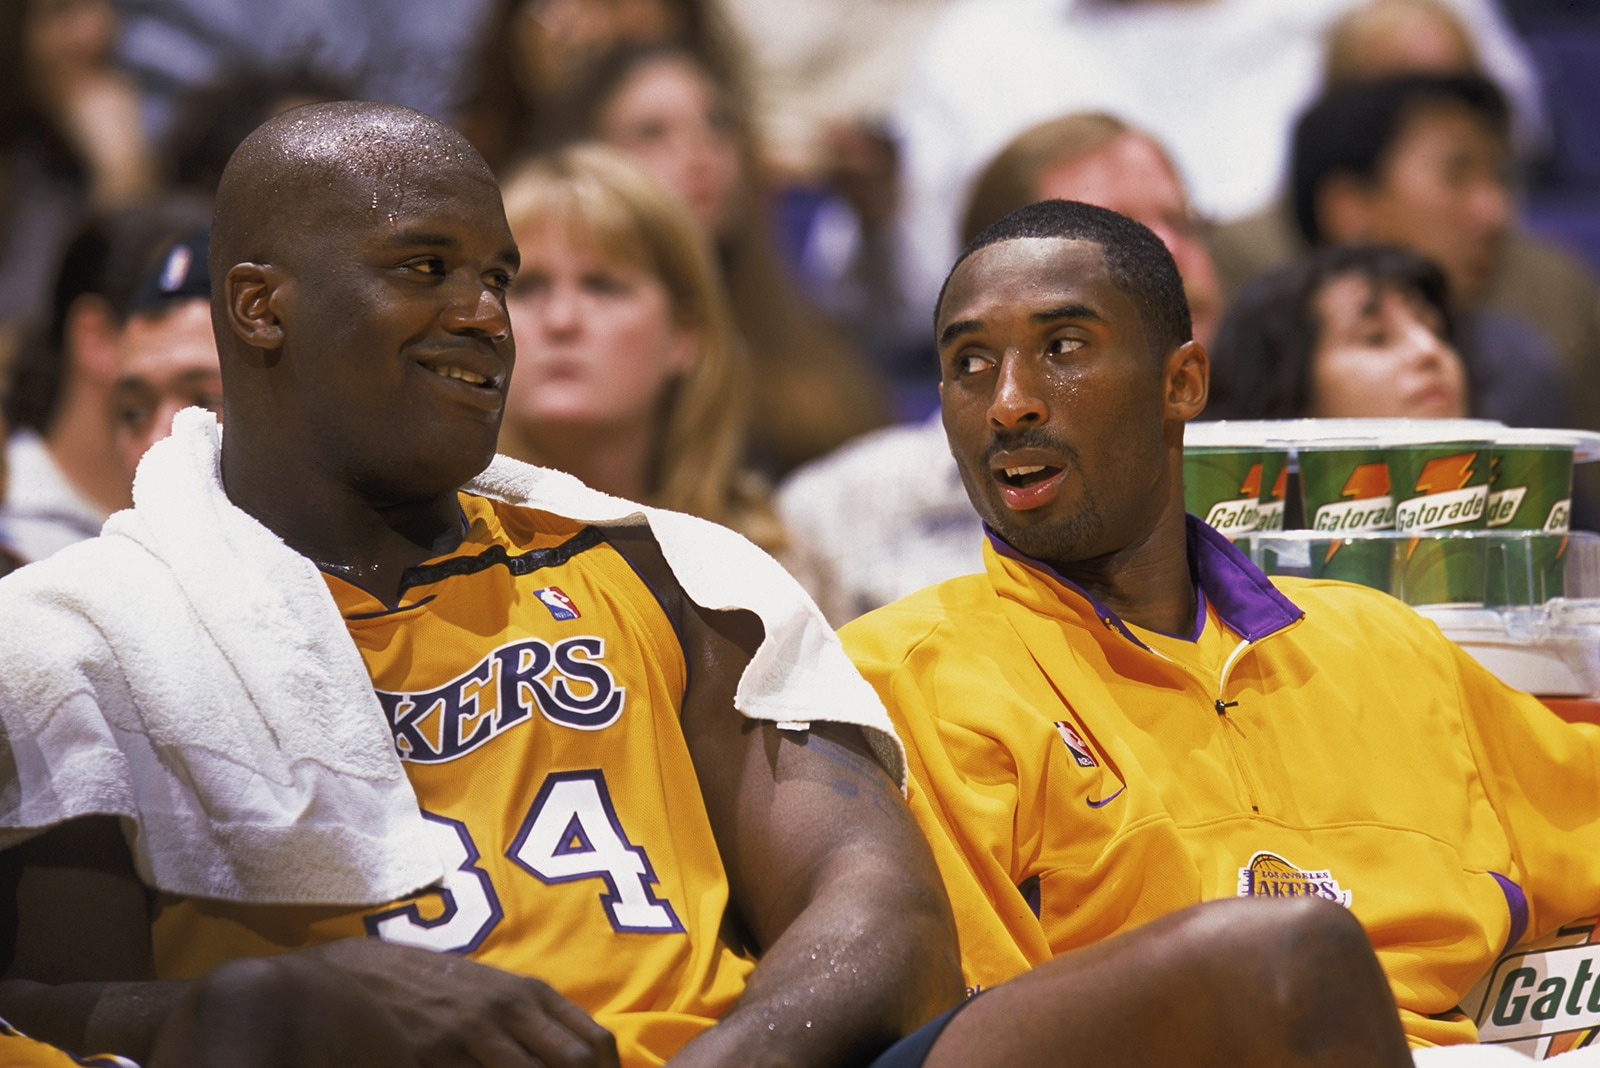 Shaq and Kobe on the bench for the Lakers